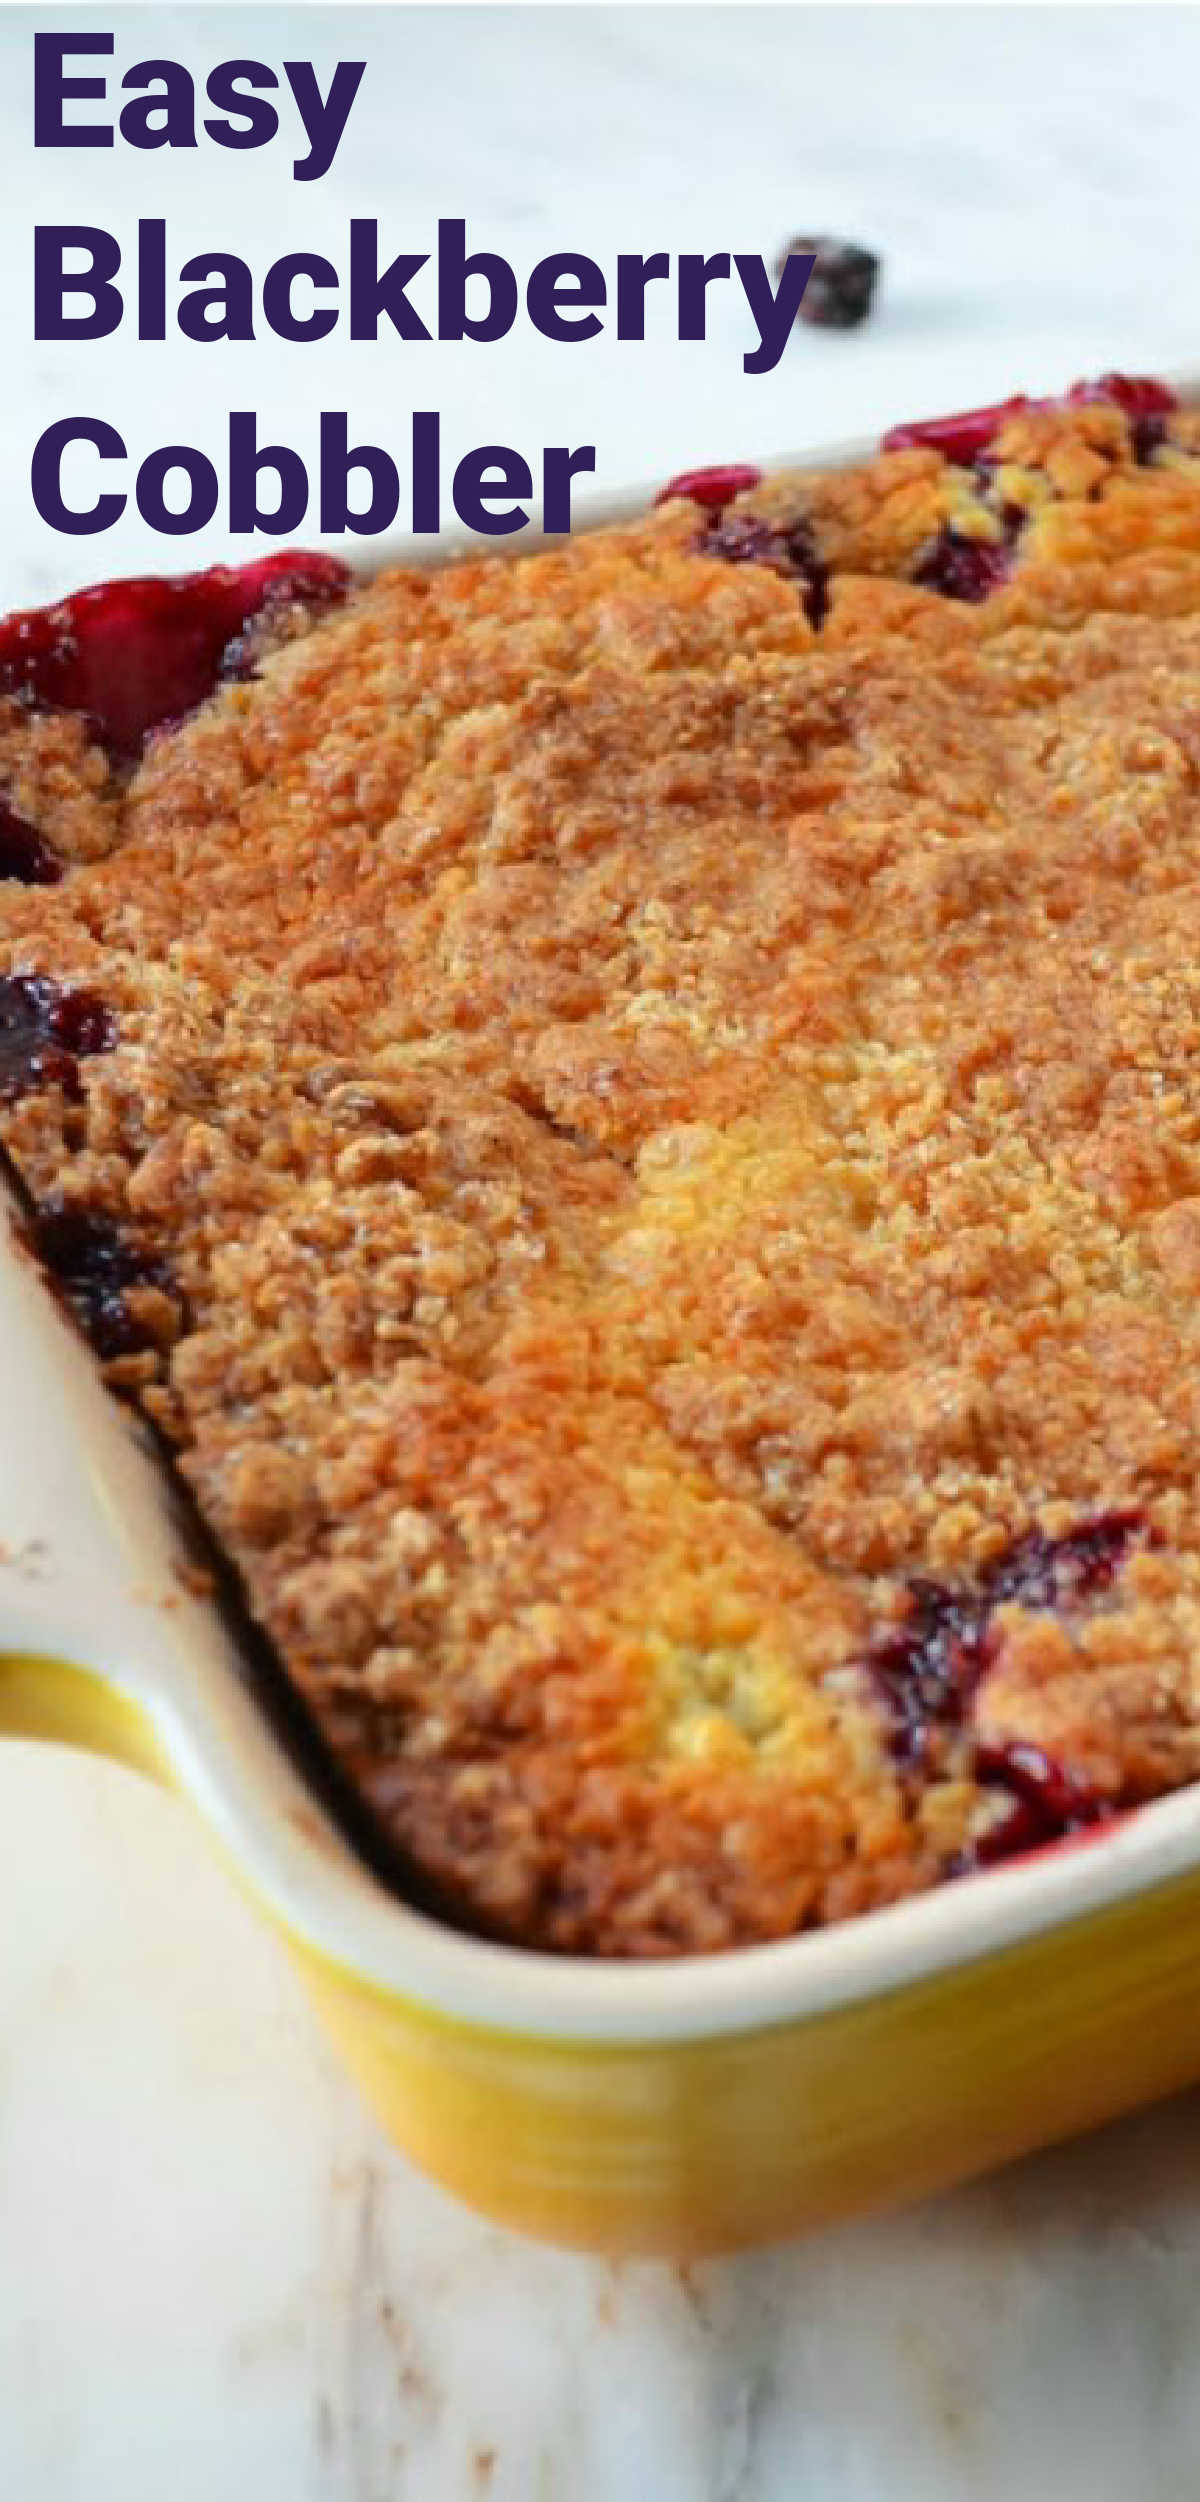 Easy Blackberry Cobbler recipe in a pan.